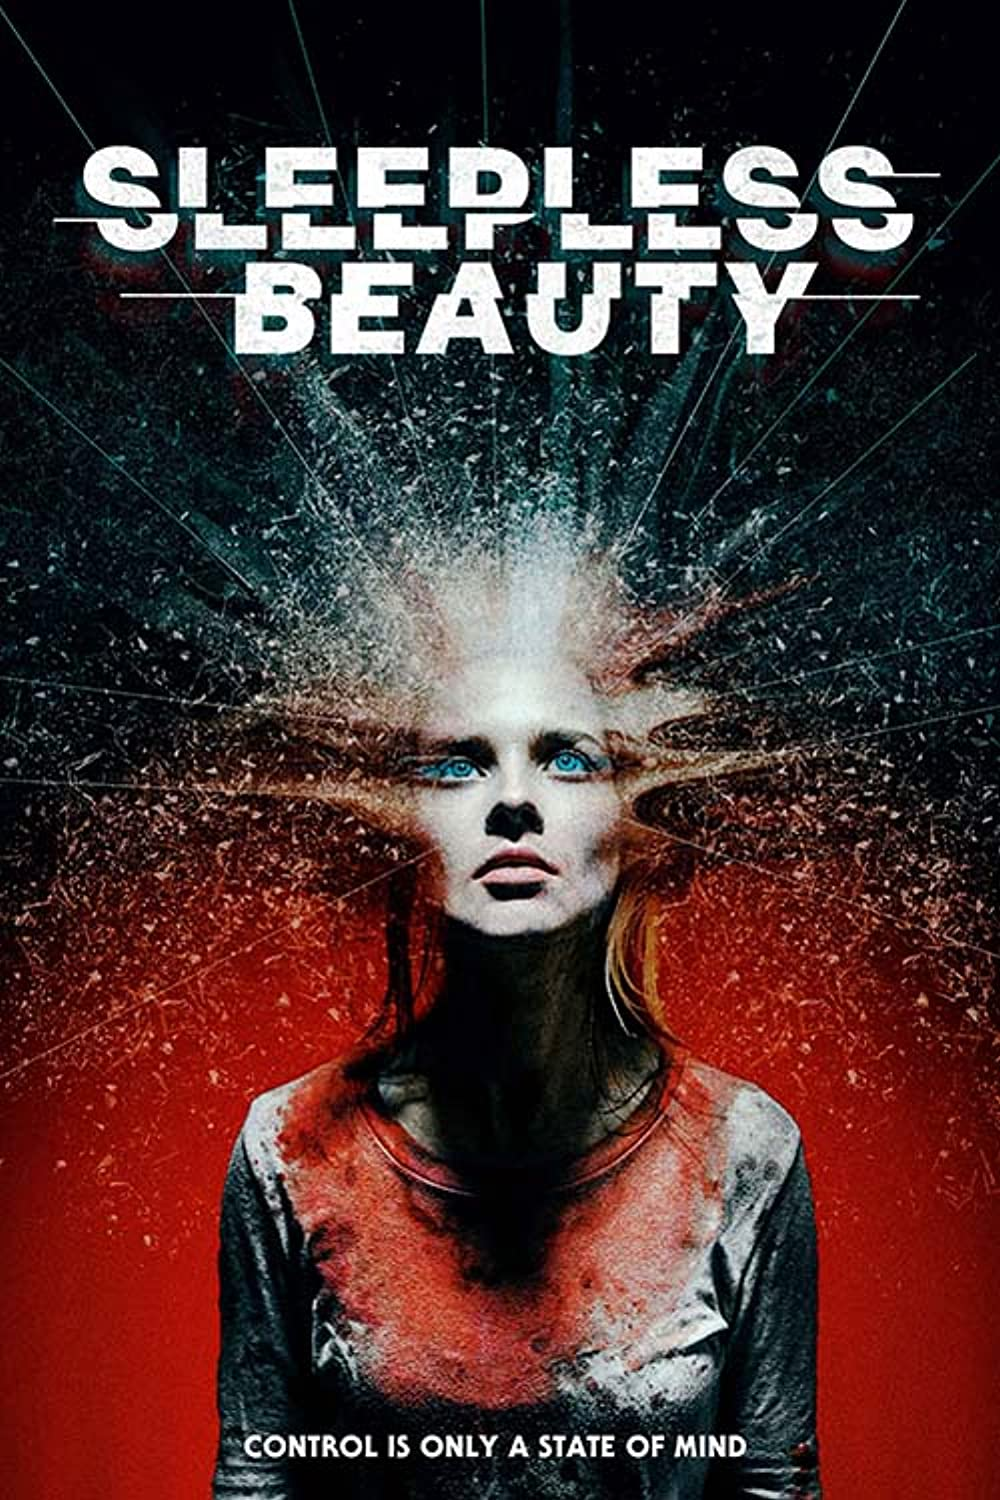 Download Sleepless Beauty 2020 Hindi Dual Audio 1080p UNRATED HDRip ESubs 1.7GB